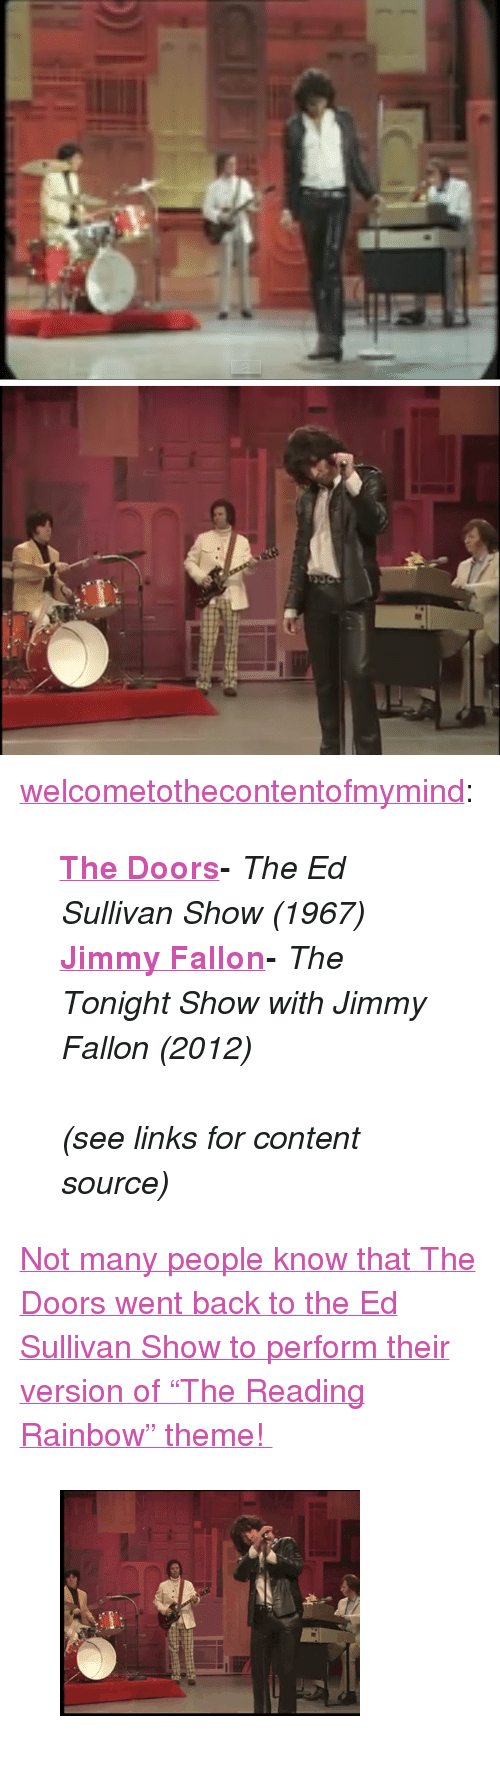 """reading rainbow: <p><a href=""""http://welcometothecontentofmymind.tumblr.com/post/124204554642/the-doors-the-ed-sullivan-show-1967-jimmy"""" class=""""tumblr_blog"""" target=""""_blank"""">welcometothecontentofmymind</a>:</p>  <blockquote><p><b><a href=""""https://www.youtube.com/watch?v=5SyrUDC2w4Q"""" target=""""_blank"""">The Doors</a>-</b><i> The Ed Sullivan Show (1967)</i></p><p><b><a href=""""https://www.youtube.com/watch?v=eBRYsAfchkY"""" target=""""_blank"""">Jimmy Fallon</a>-</b><i> The Tonight Show with Jimmy Fallon (2012)</i></p><p><i><br/></i></p><p><i>(see links for content source)</i></p></blockquote>  <p><a href=""""https://www.youtube.com/watch?v=eBRYsAfchkY"""" target=""""_blank"""">Not many people know that The Doors went back to the Ed Sullivan Show to perform their version of""""The Reading Rainbow"""" theme!</a></p><figure class=""""tmblr-full"""" data-orig-height=""""226"""" data-orig-width=""""300""""><img src=""""https://78.media.tumblr.com/bfa18d13320f1b89972bfe3fbca4a6cc/tumblr_inline_nrle0fL0Zc1qgt12i_500.gif"""" data-orig-height=""""226"""" data-orig-width=""""300""""/></figure>"""